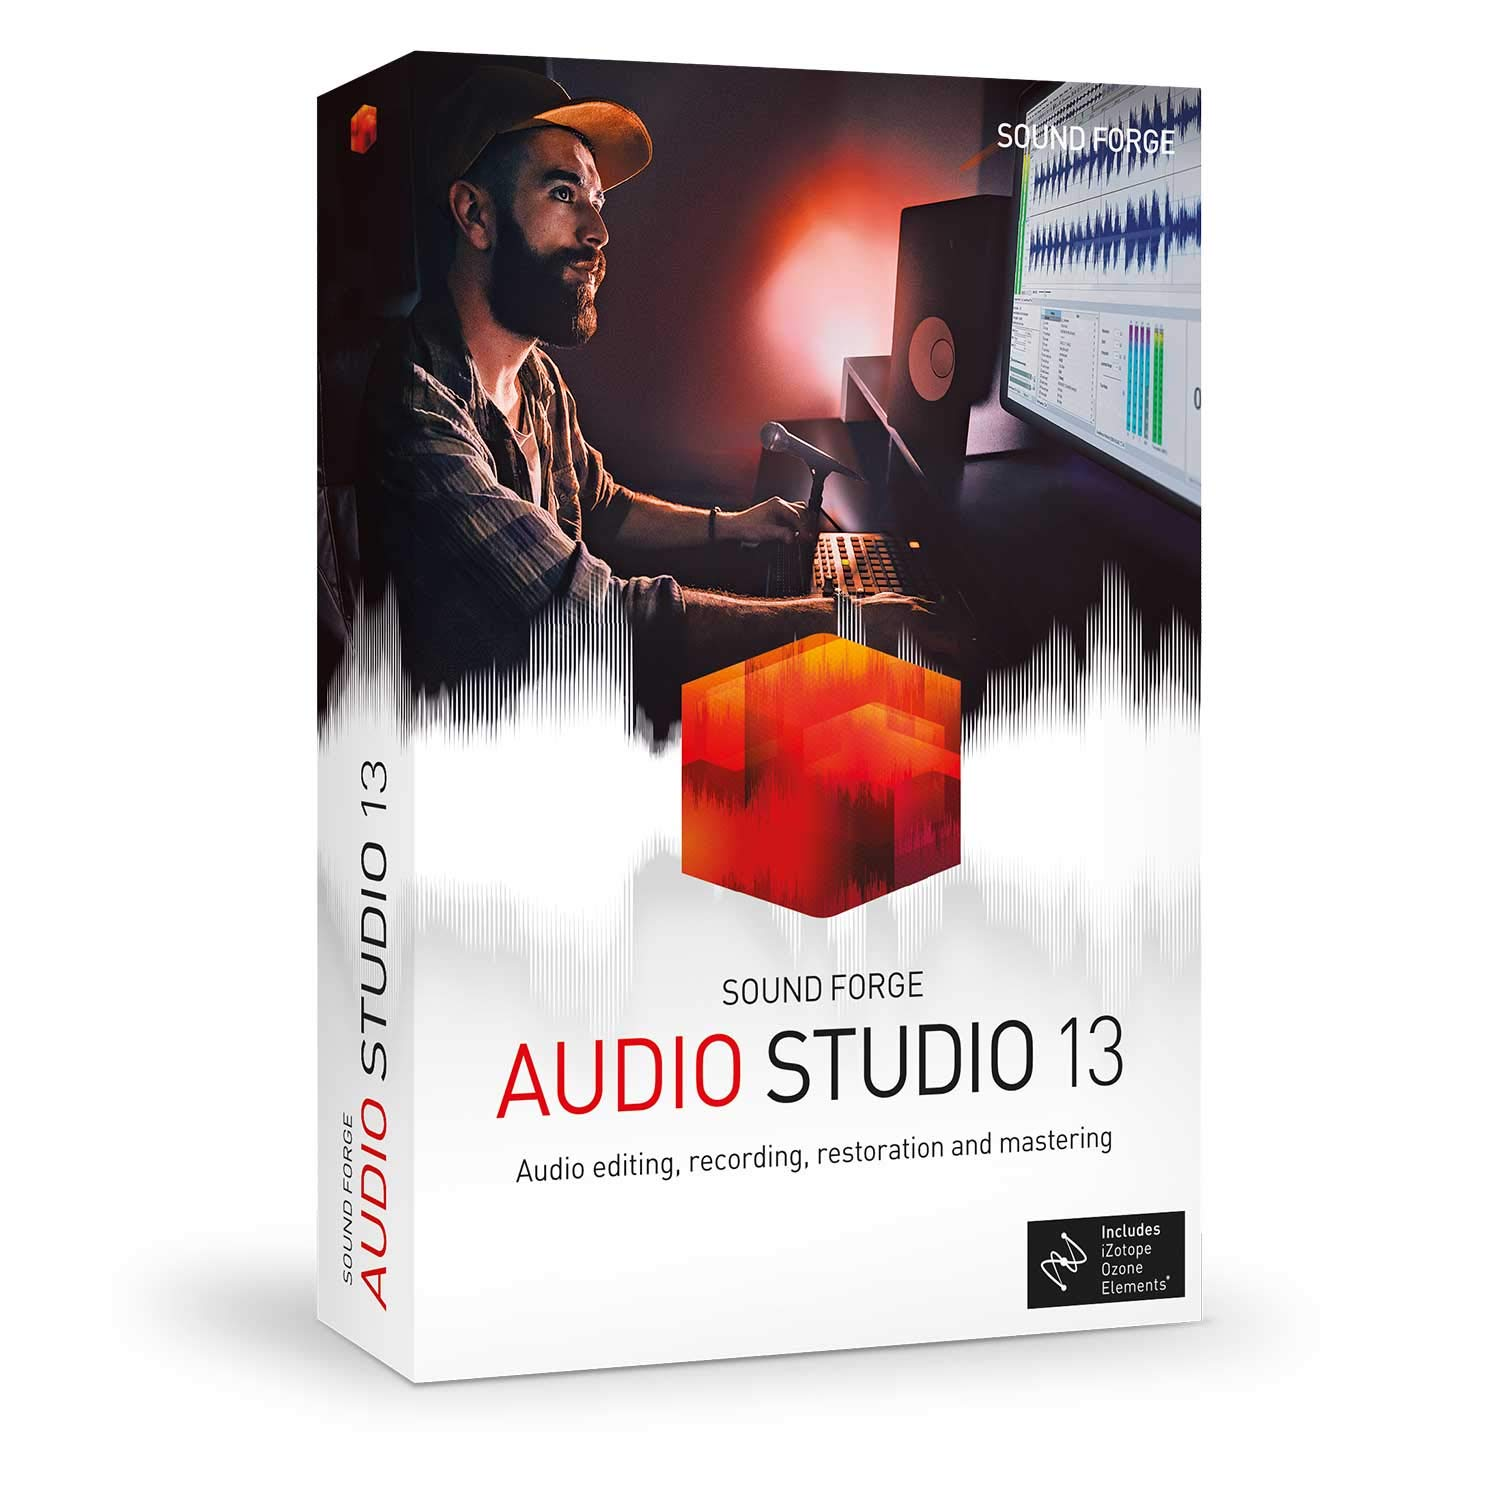 Sound Forge Audio Studio - Version 13 - Audio Editing, Recording, Restoration and Mastering in One by Sound Forge